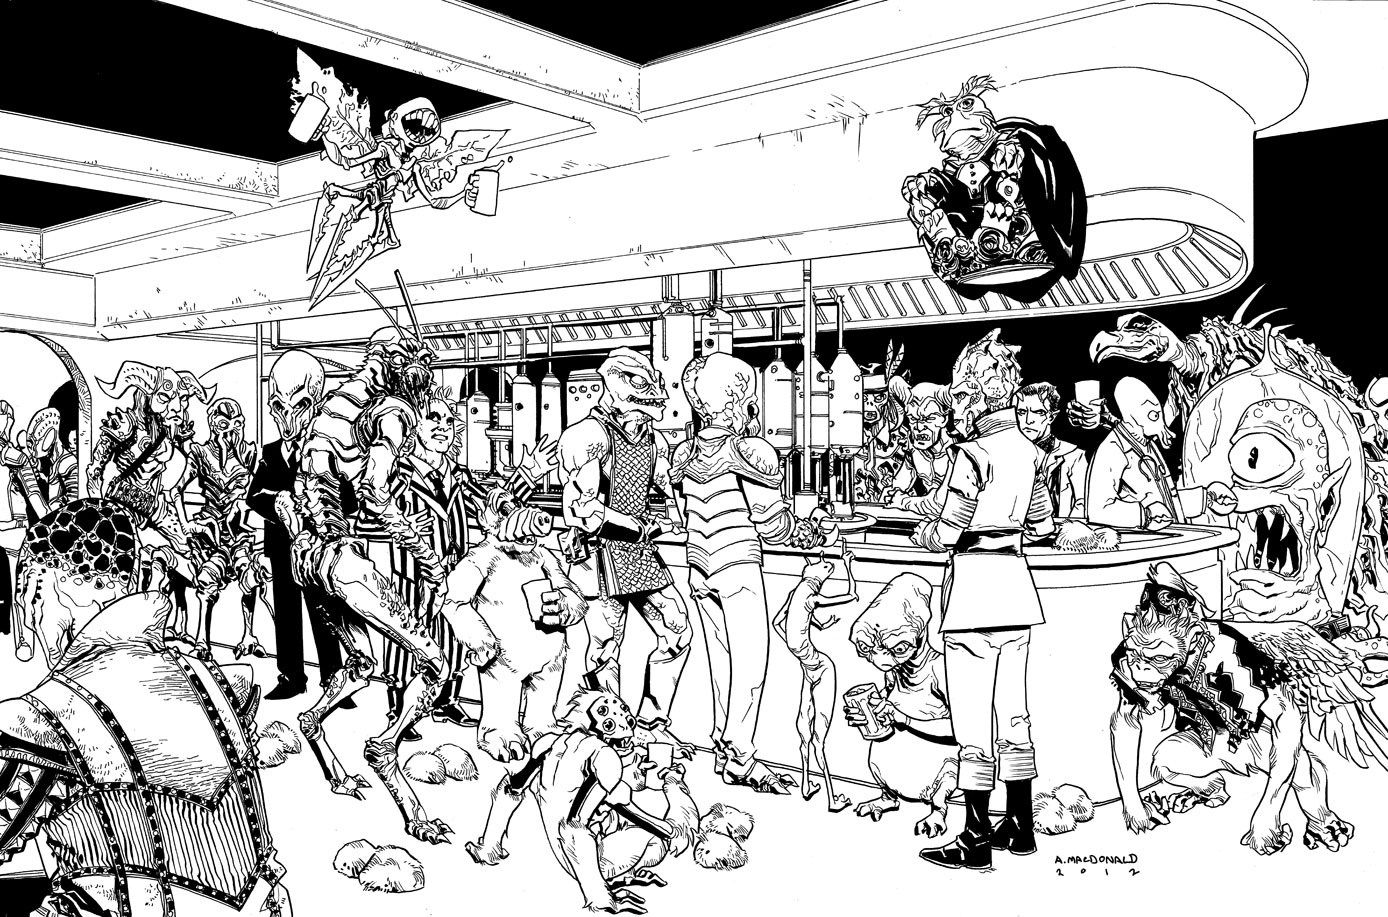 mos eisley and coloring pages - photo#3